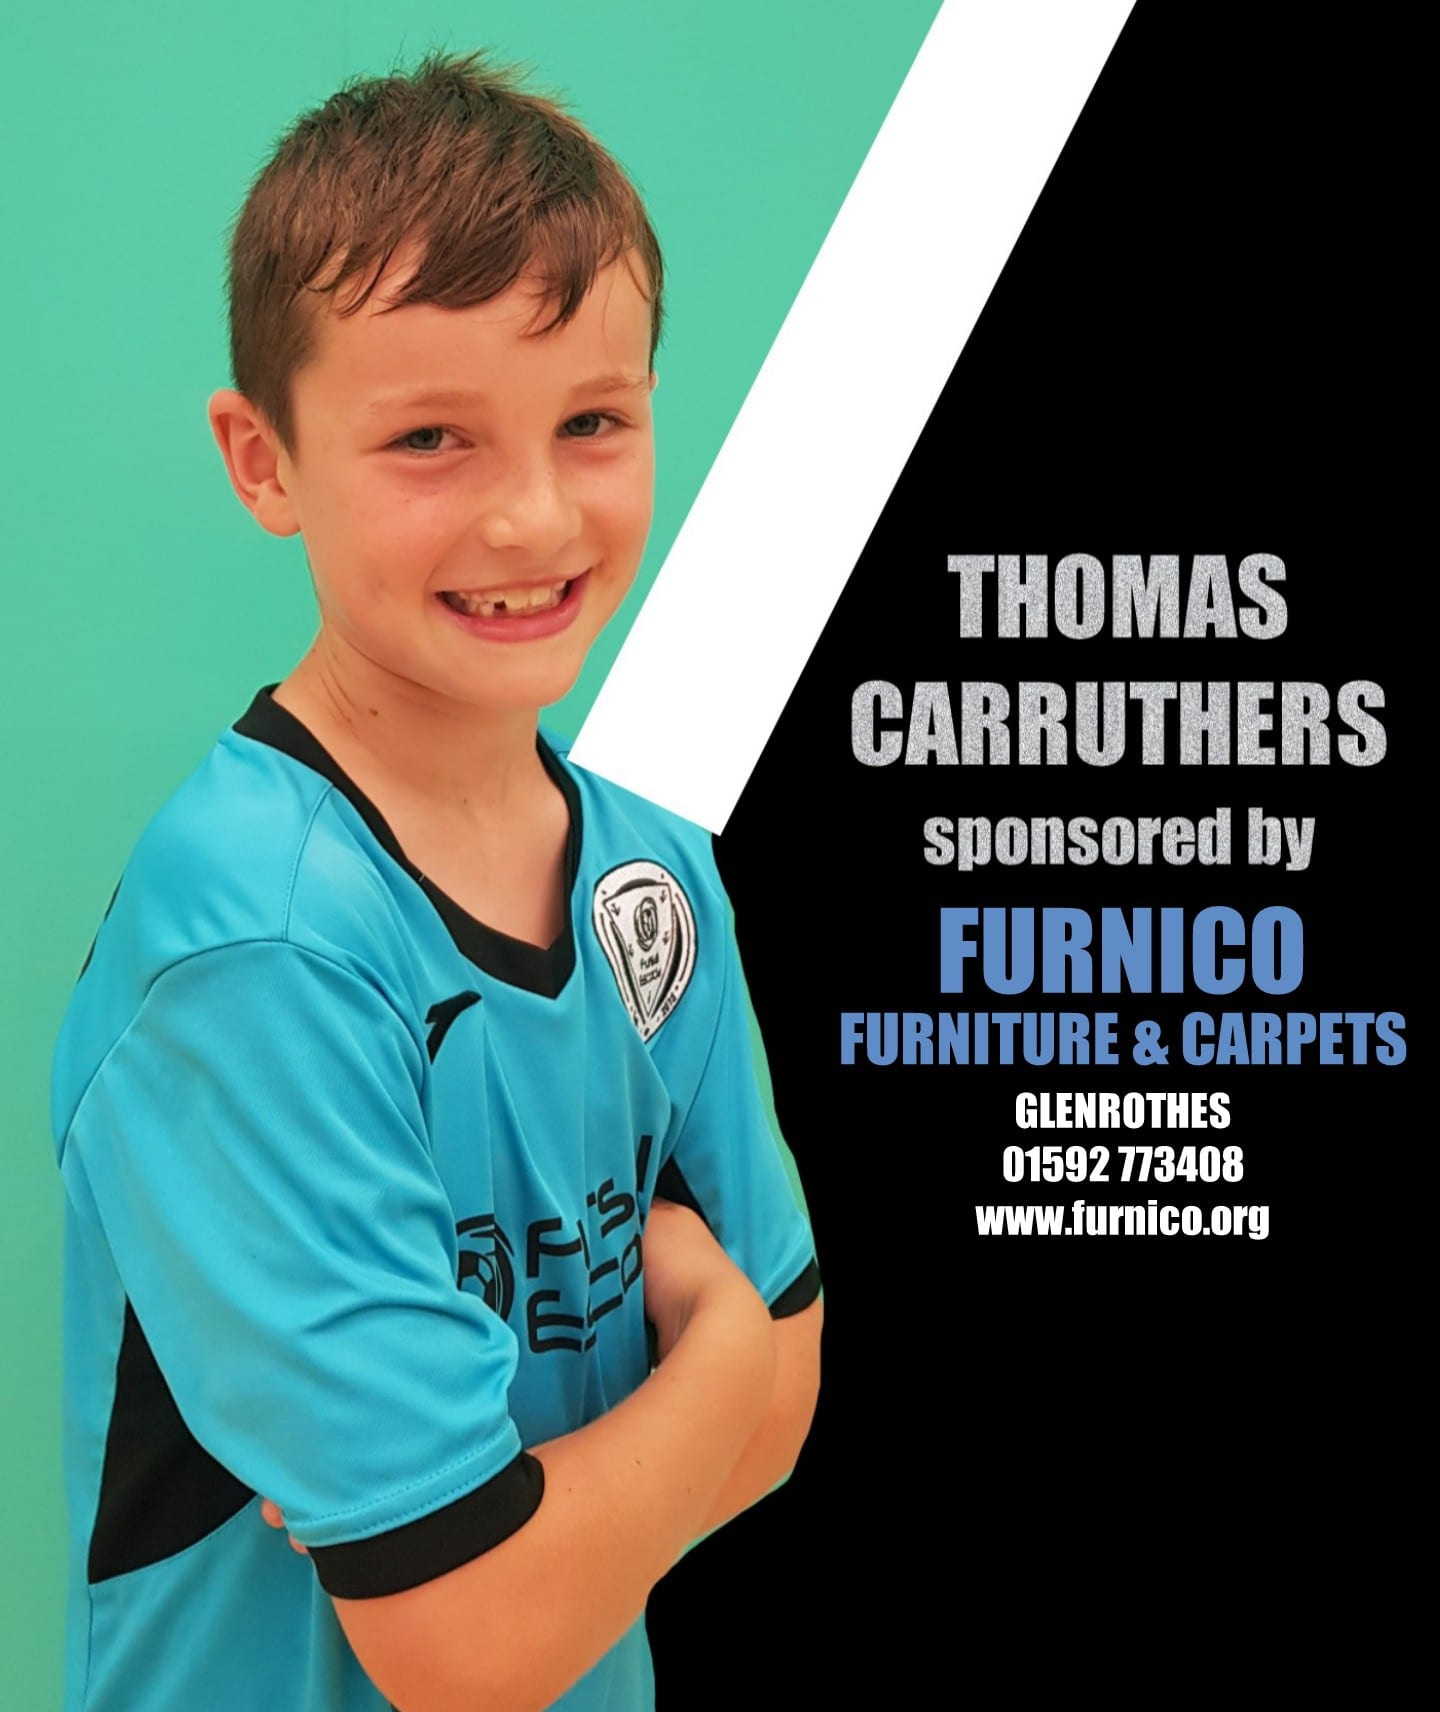 Thomas Carruthers